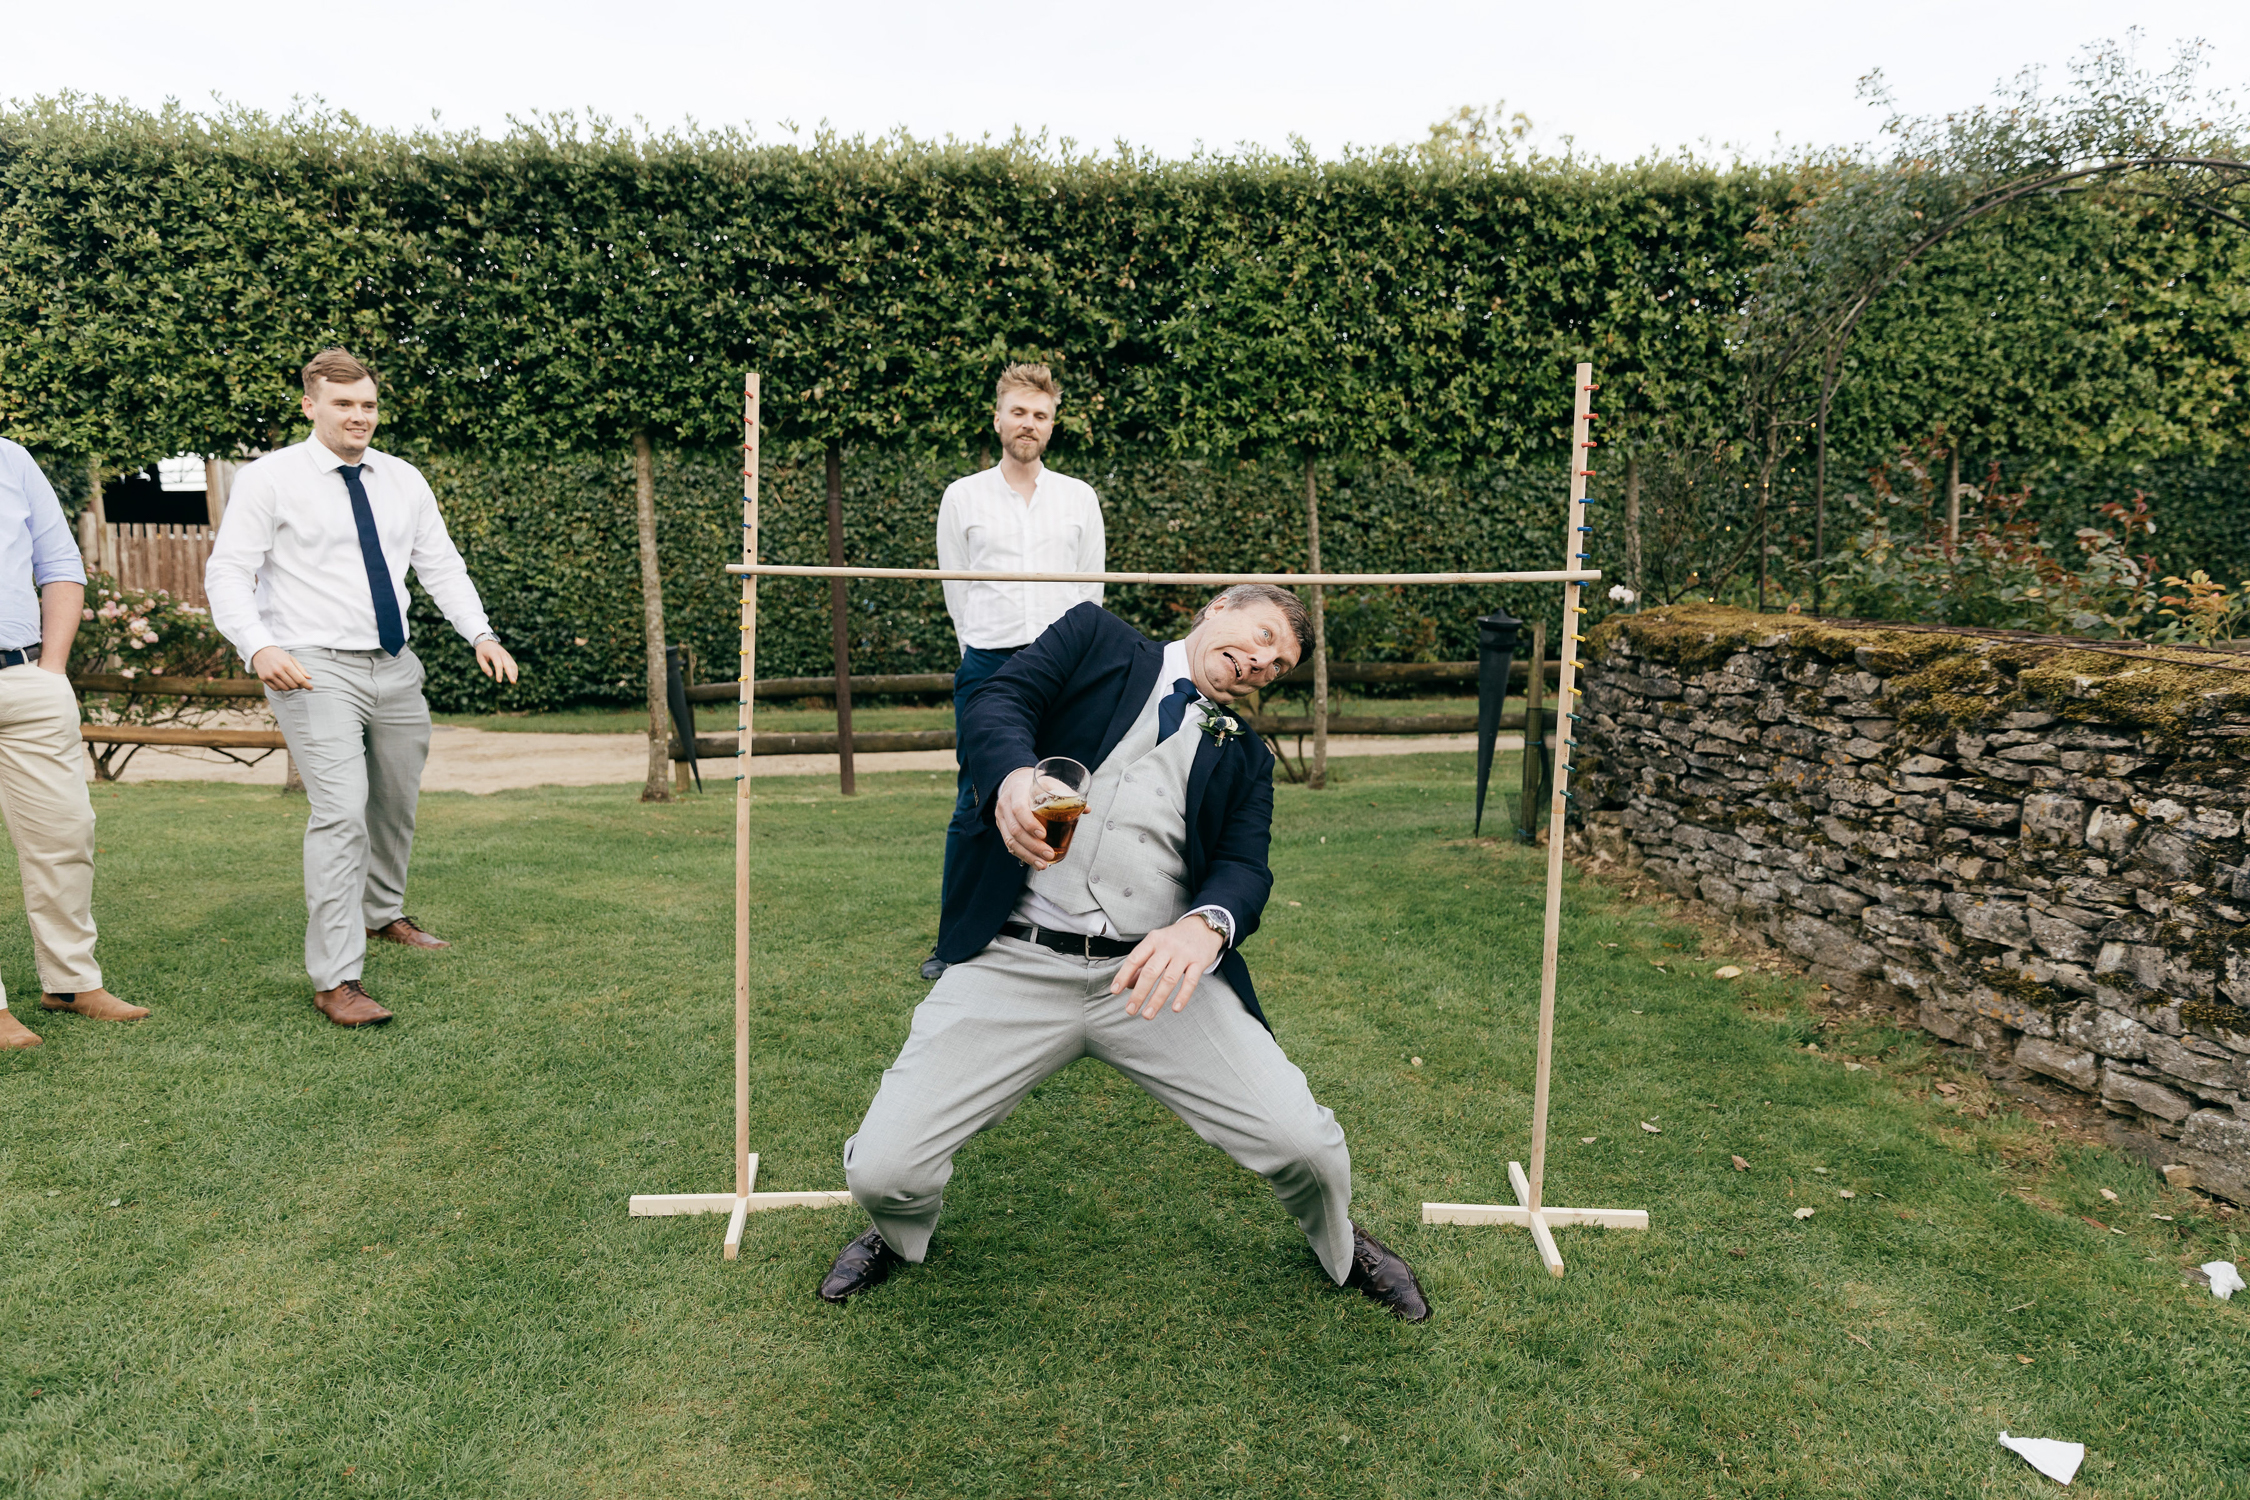 candid and funny photo of wedding guest playing limbo